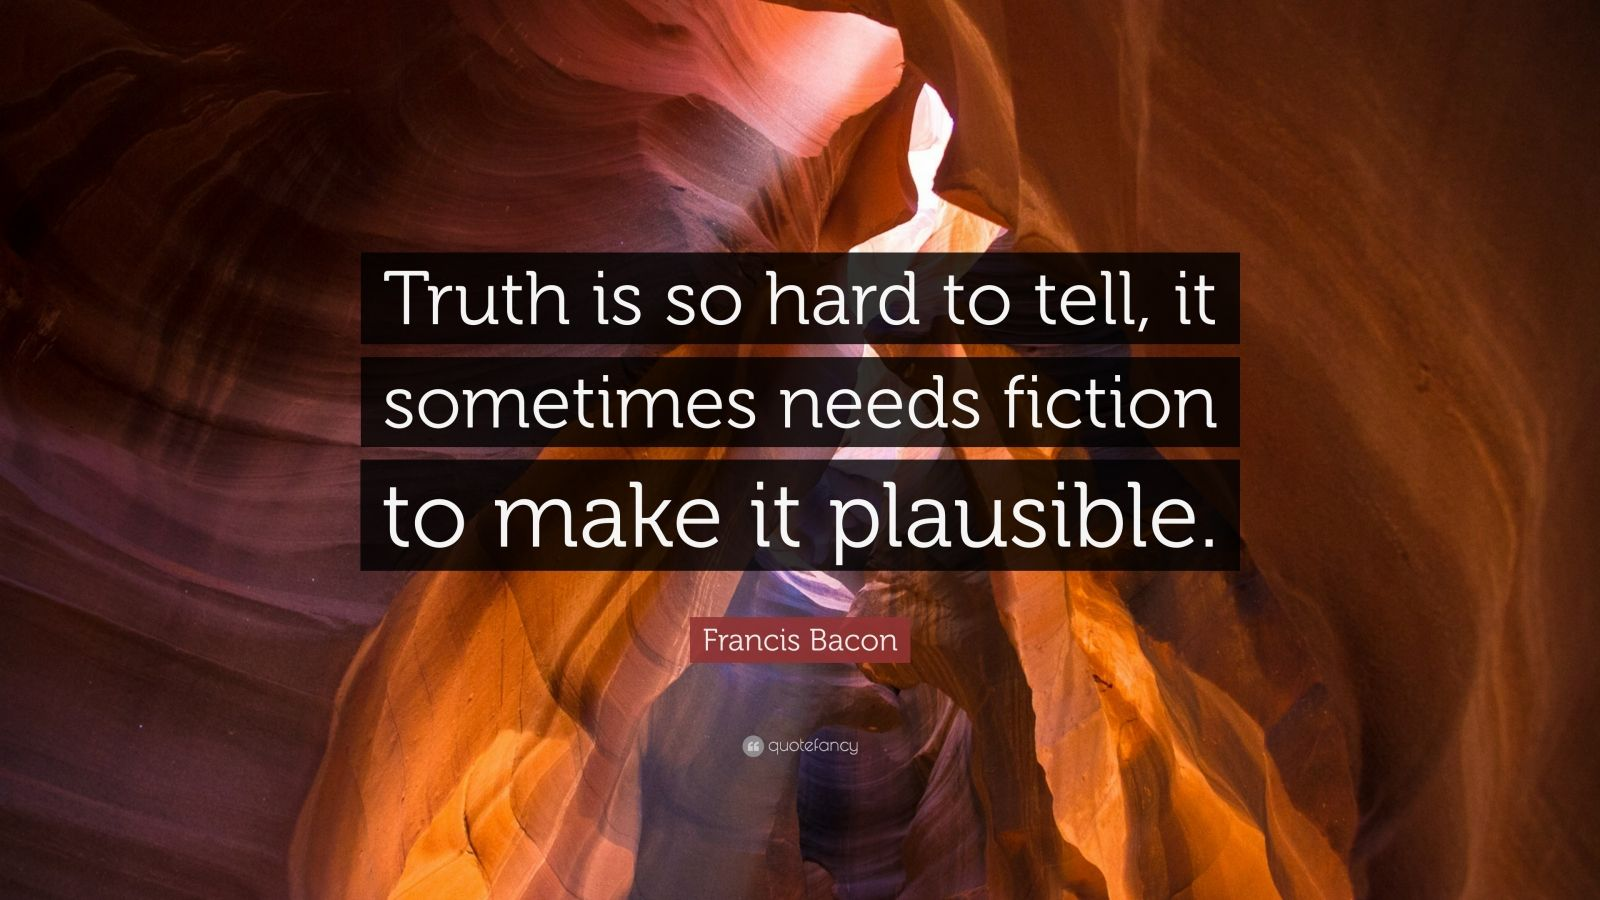 """Francis Bacon Quote: """"Truth is so hard to tell, it sometimes needs fiction to make it plausible."""""""